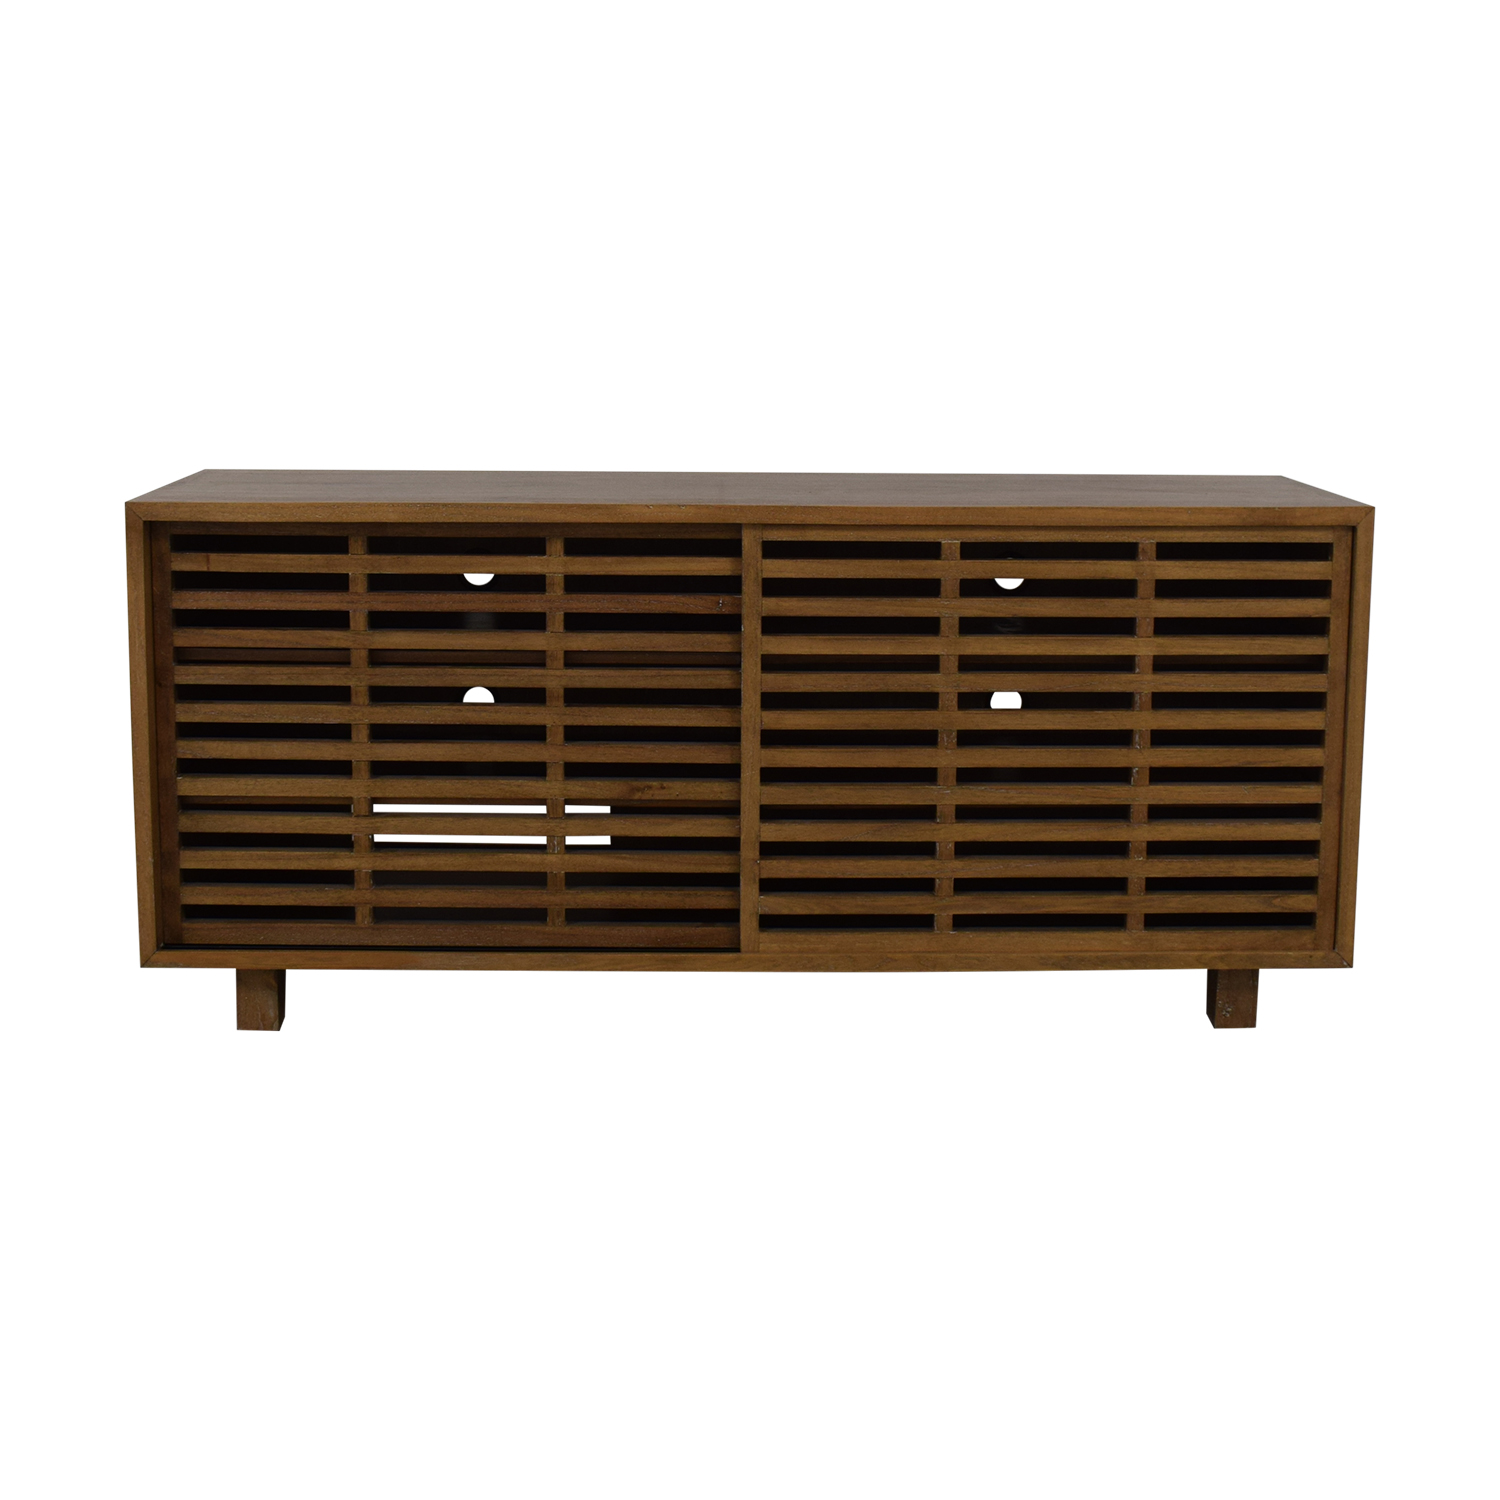 shop OLY Studio Dylan Contemporary Media Unit Oly Studio Storage